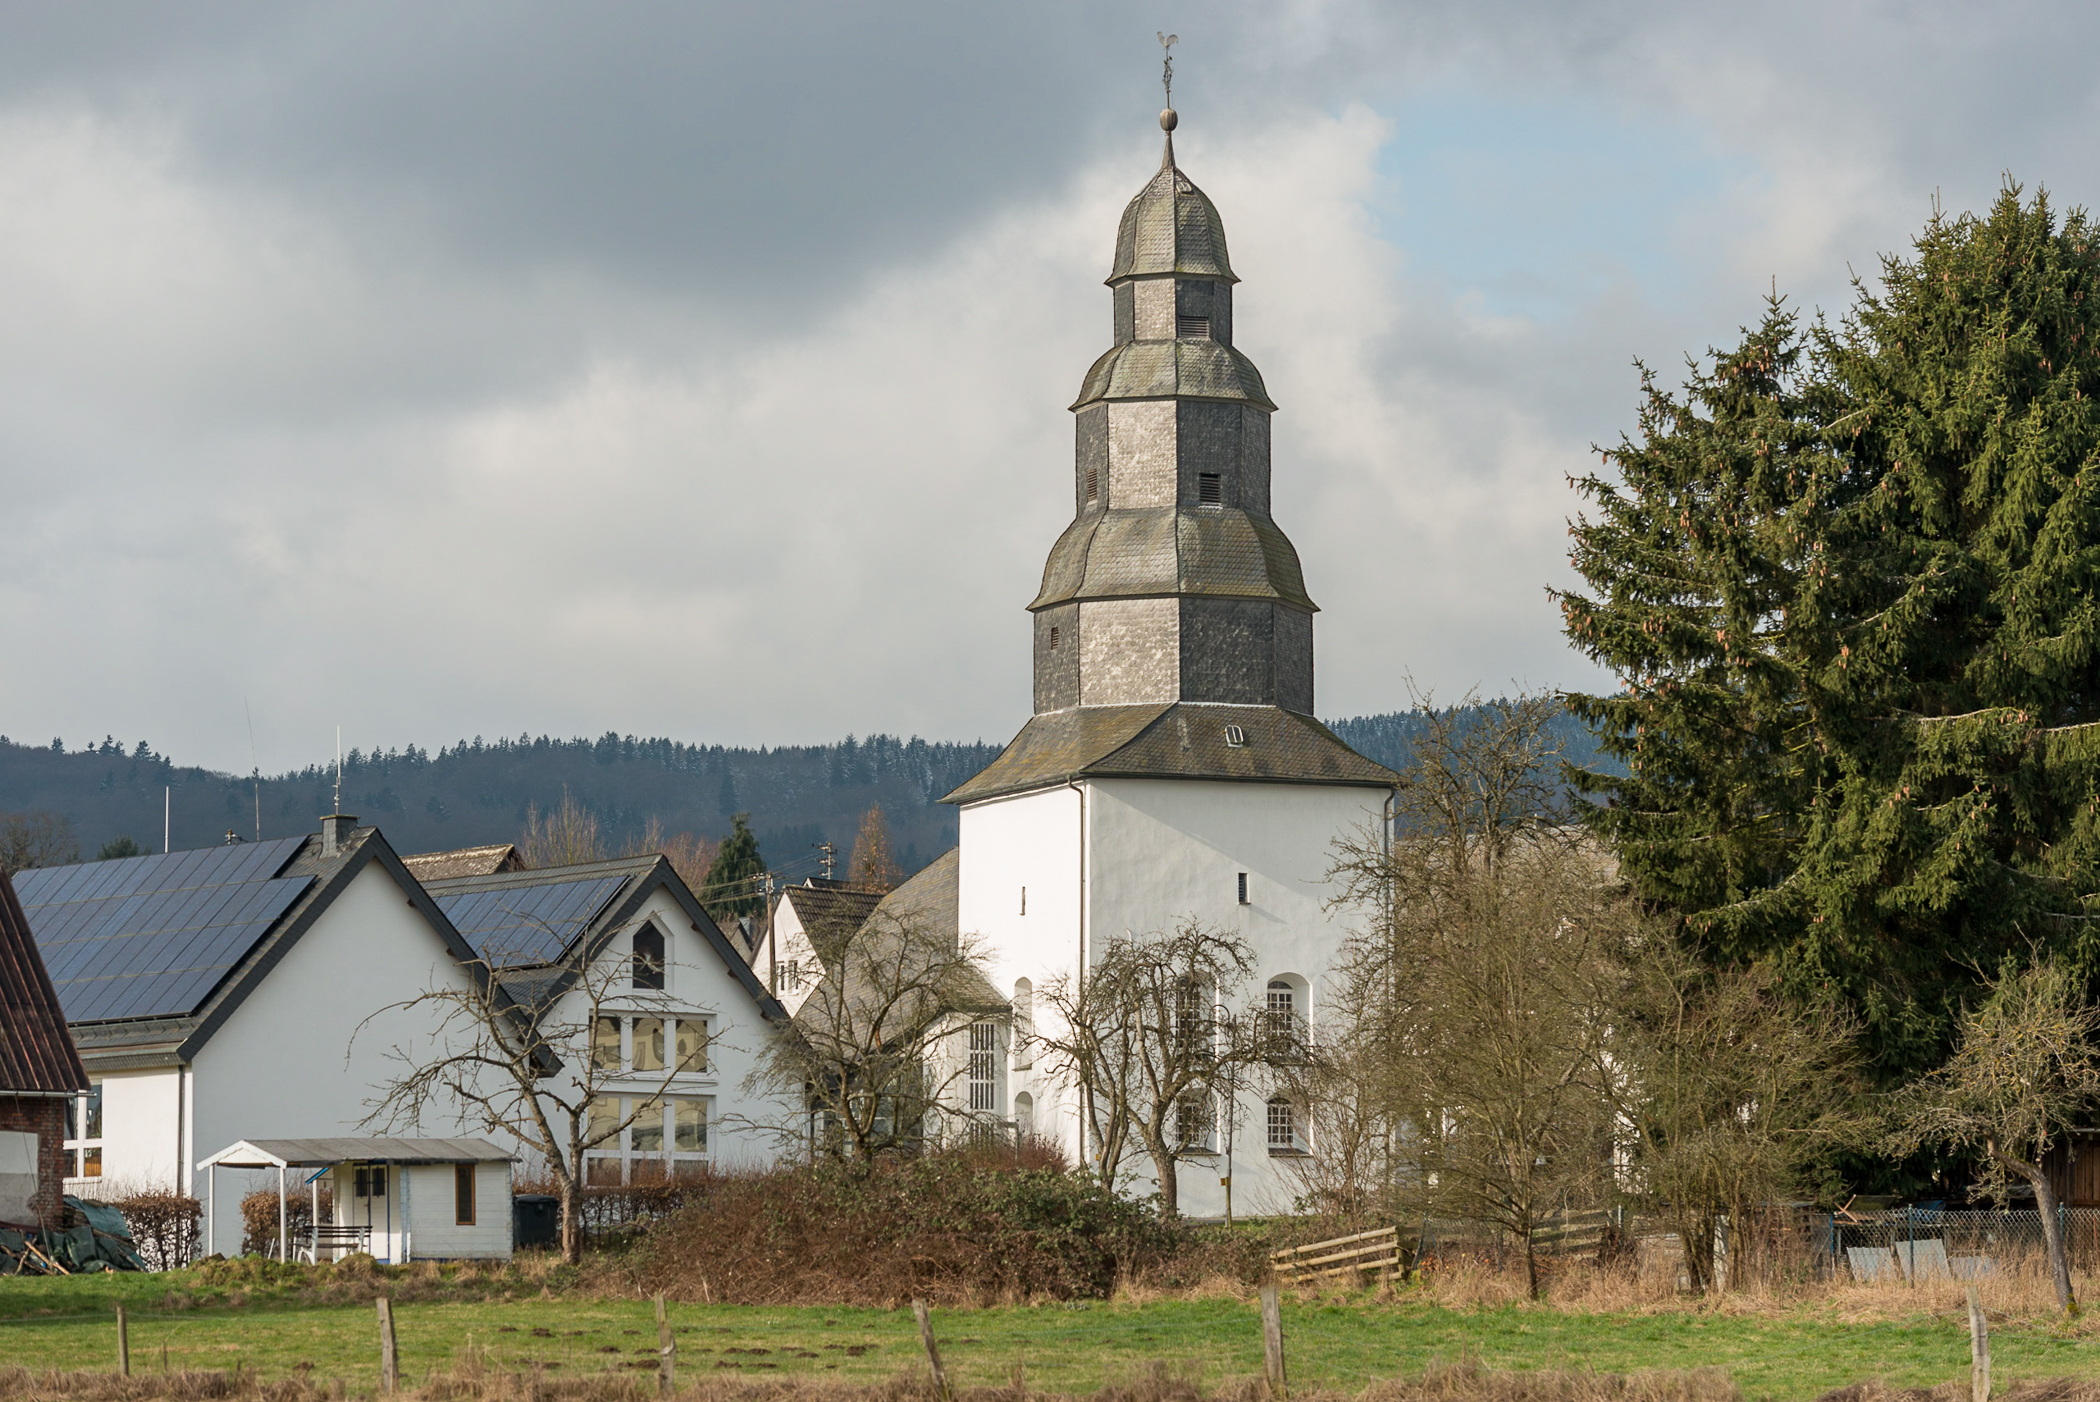 One of Holzhausen's most unique and recognizable structures, the state church's octagonal, slate-shingled steeple rises in the heart of the old town center, nestled between additonal church buildings and a large evergreen tree.